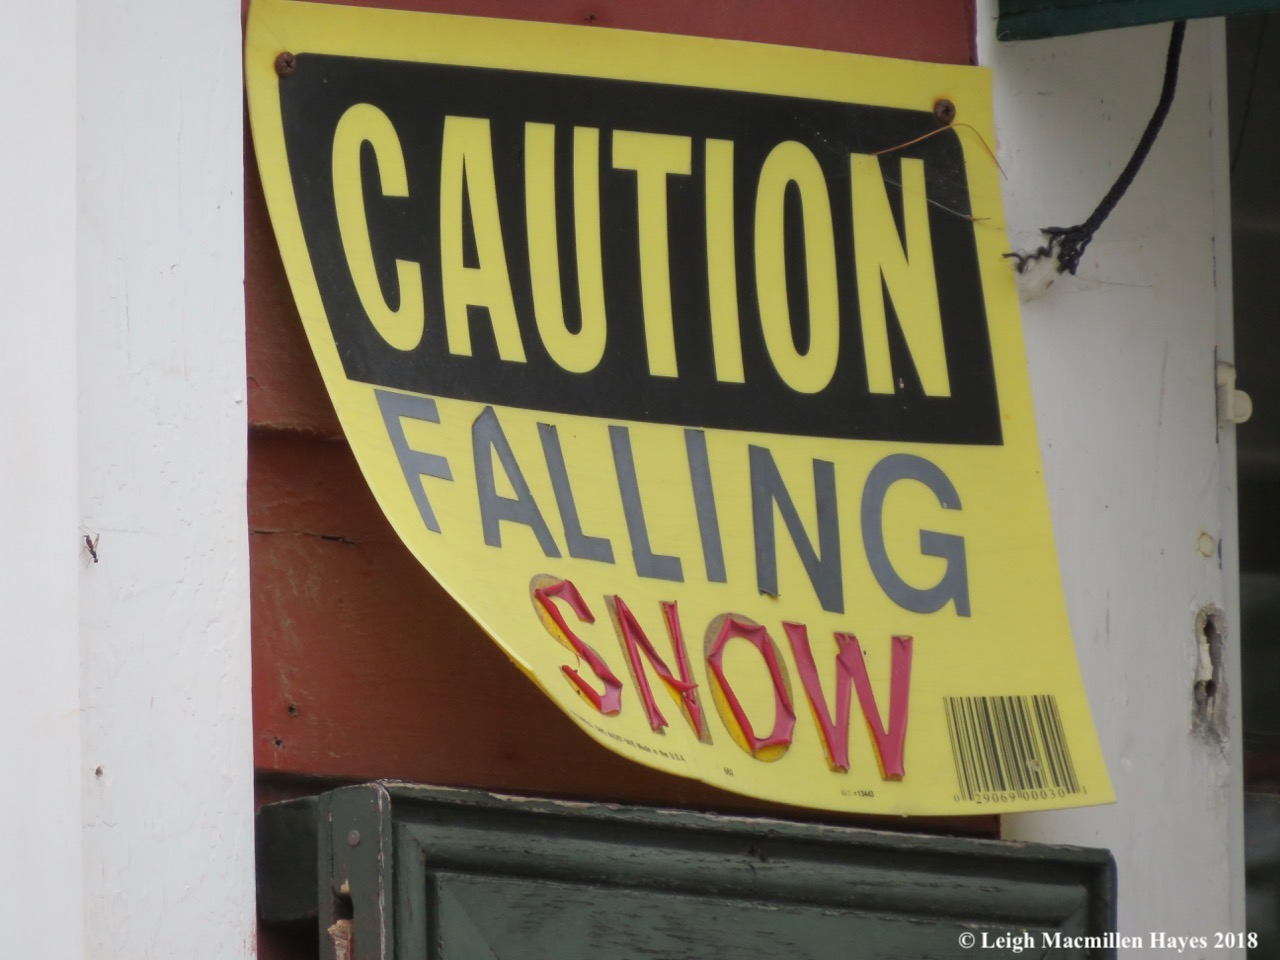 2-falling snow sign